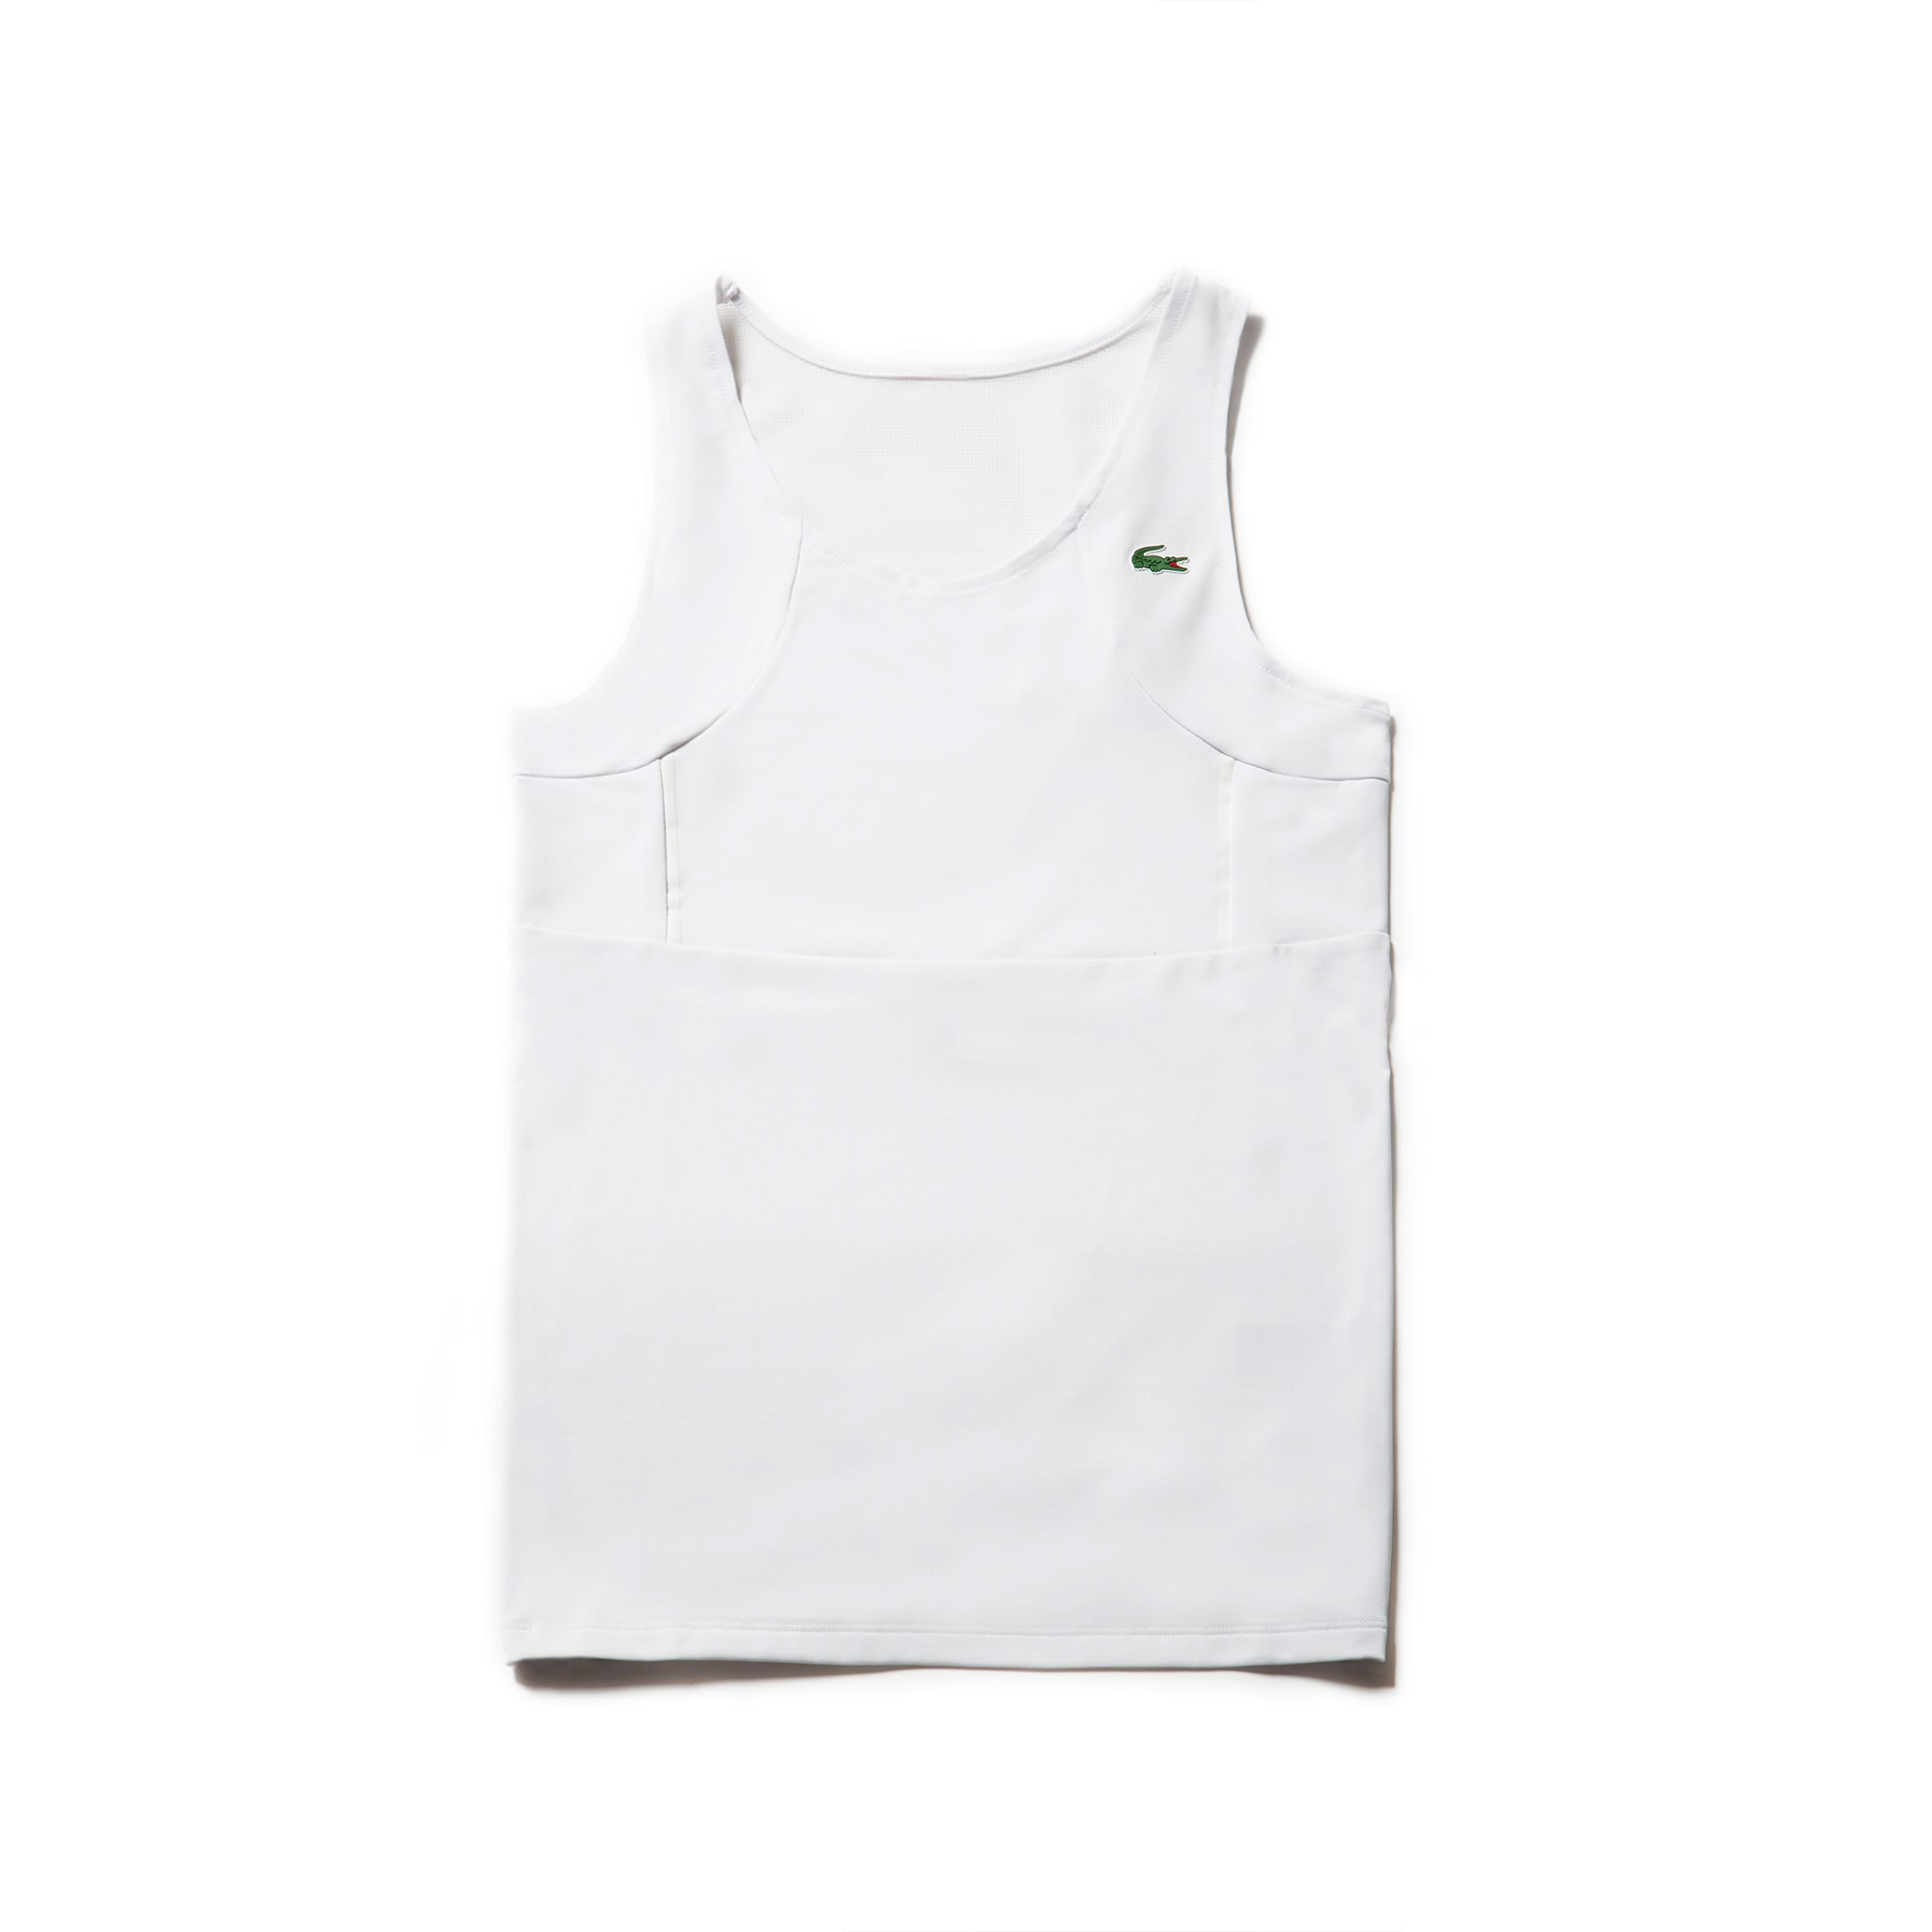 Women's  SPORT Tennis Stretch Jersey Racerback Tank Top